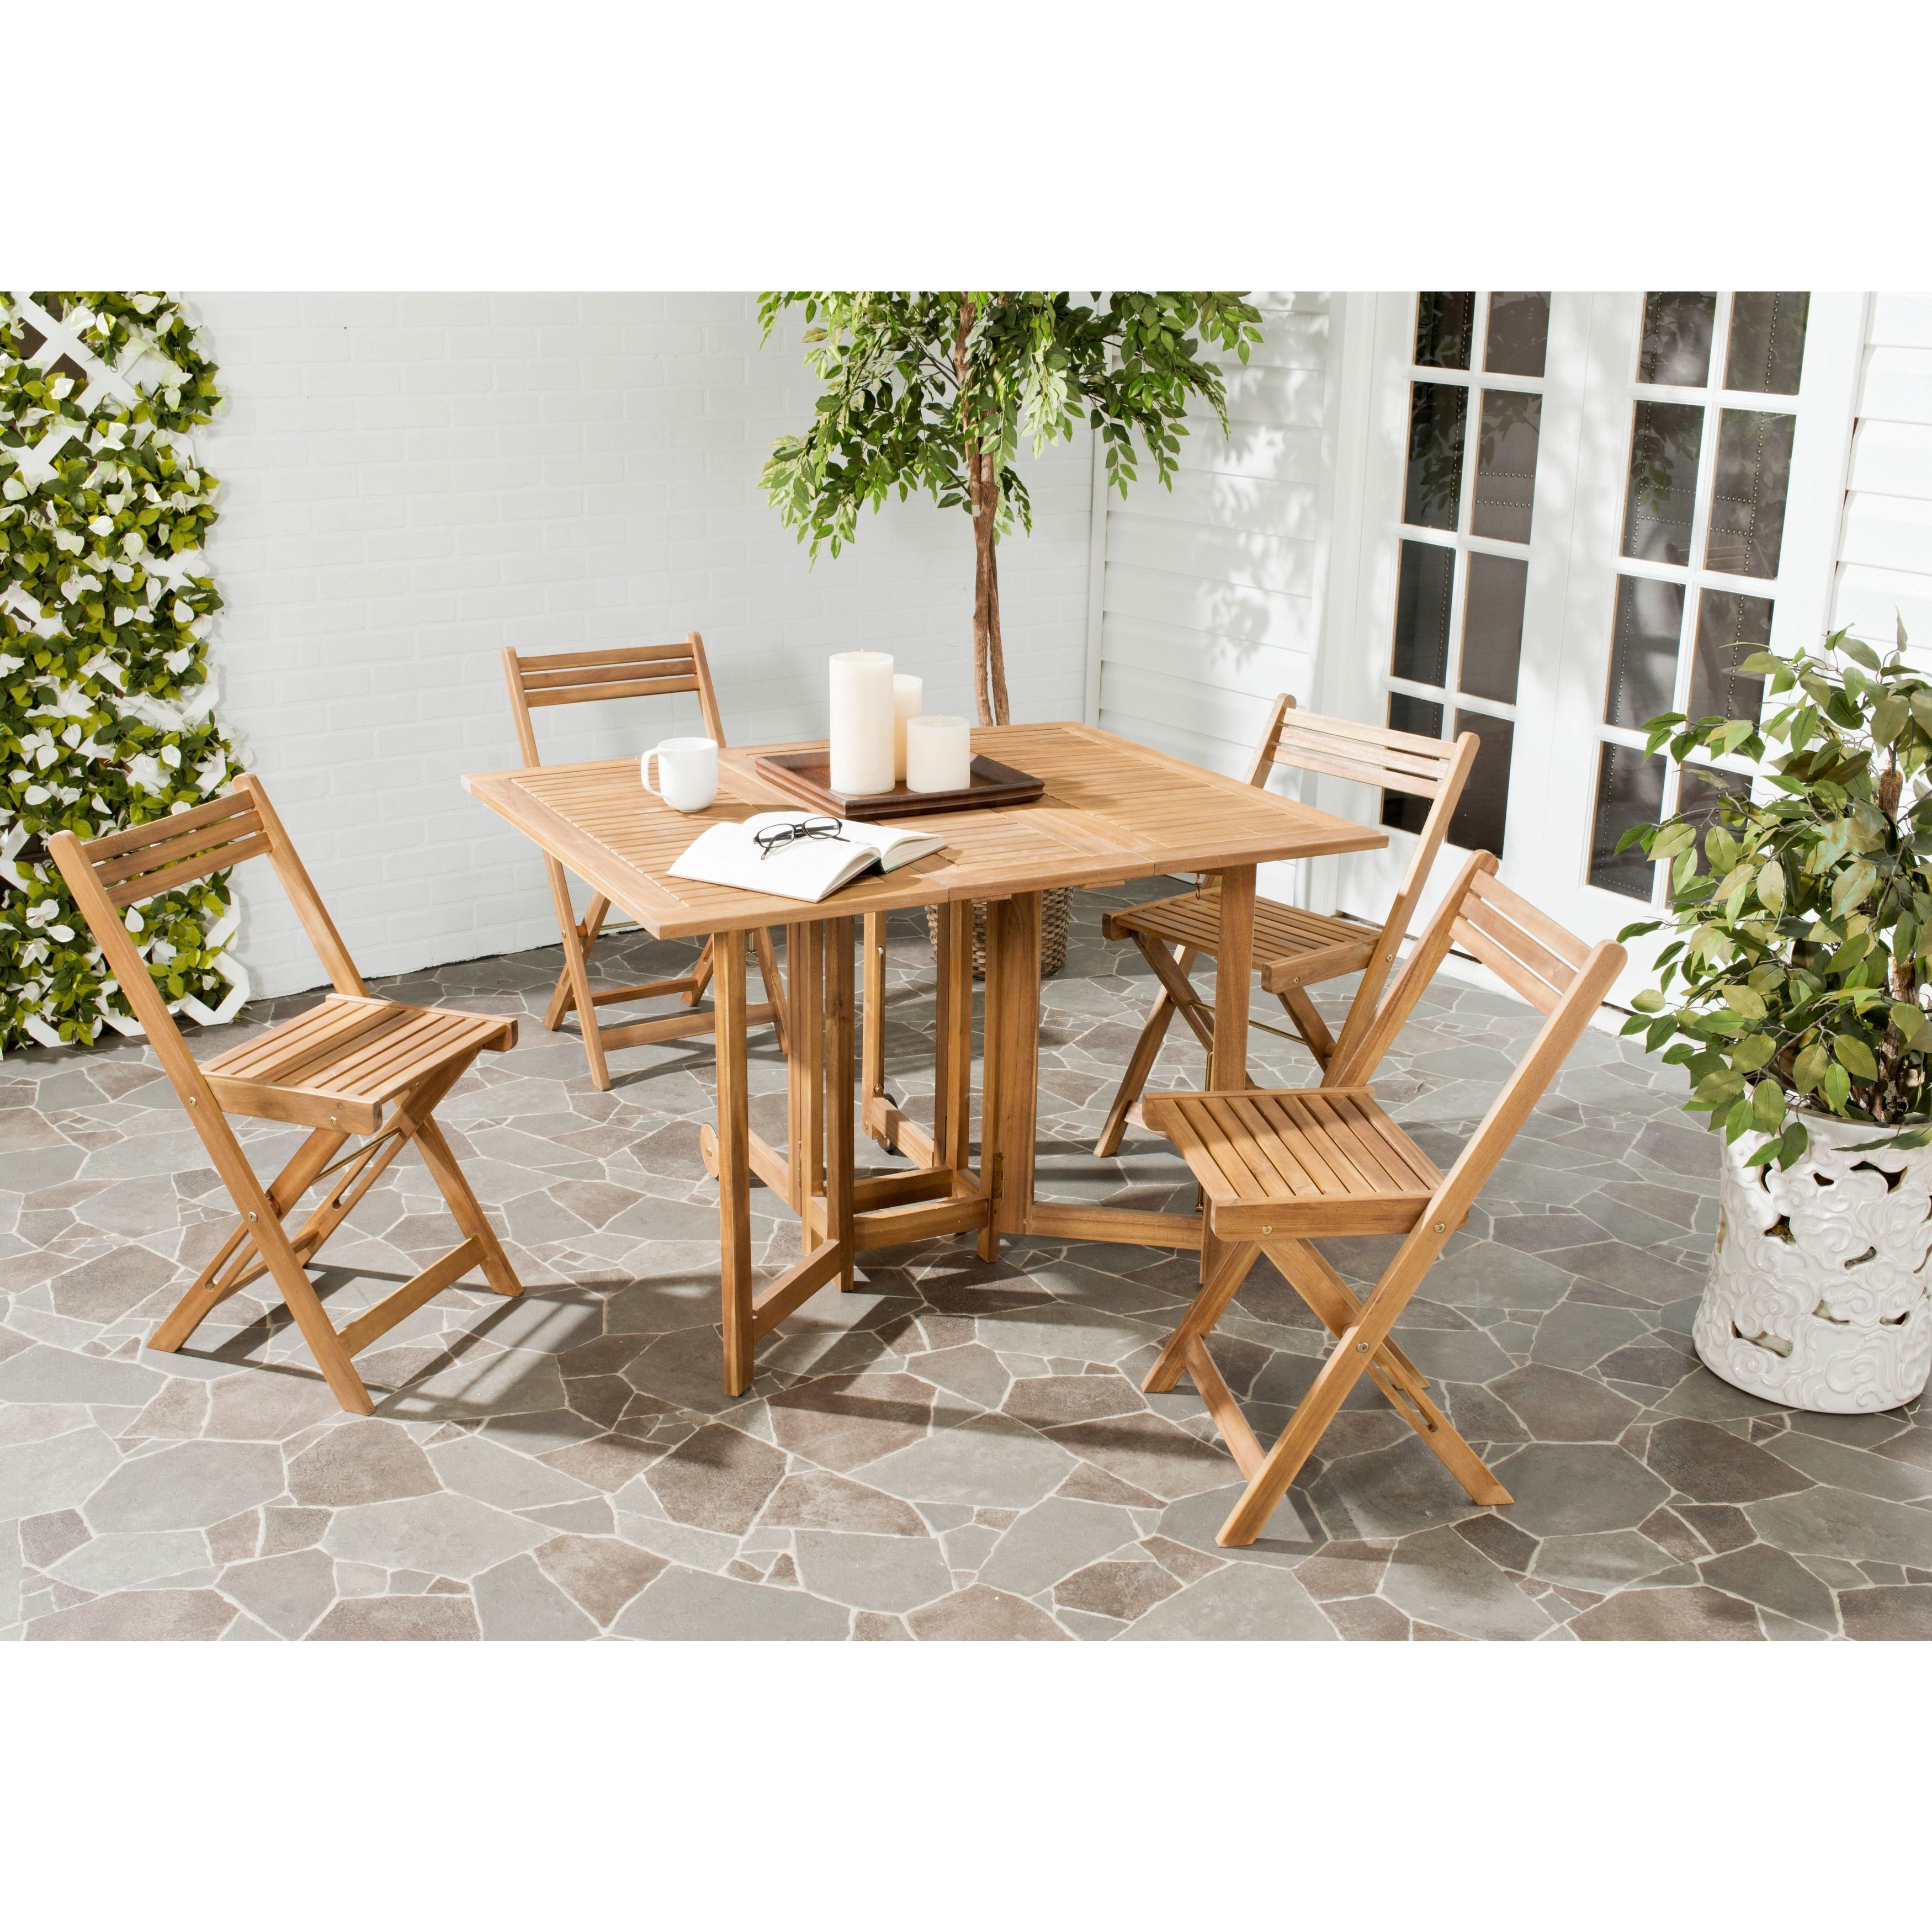 An Ingenious Space Saver Arvin Outdoor Dining Table And